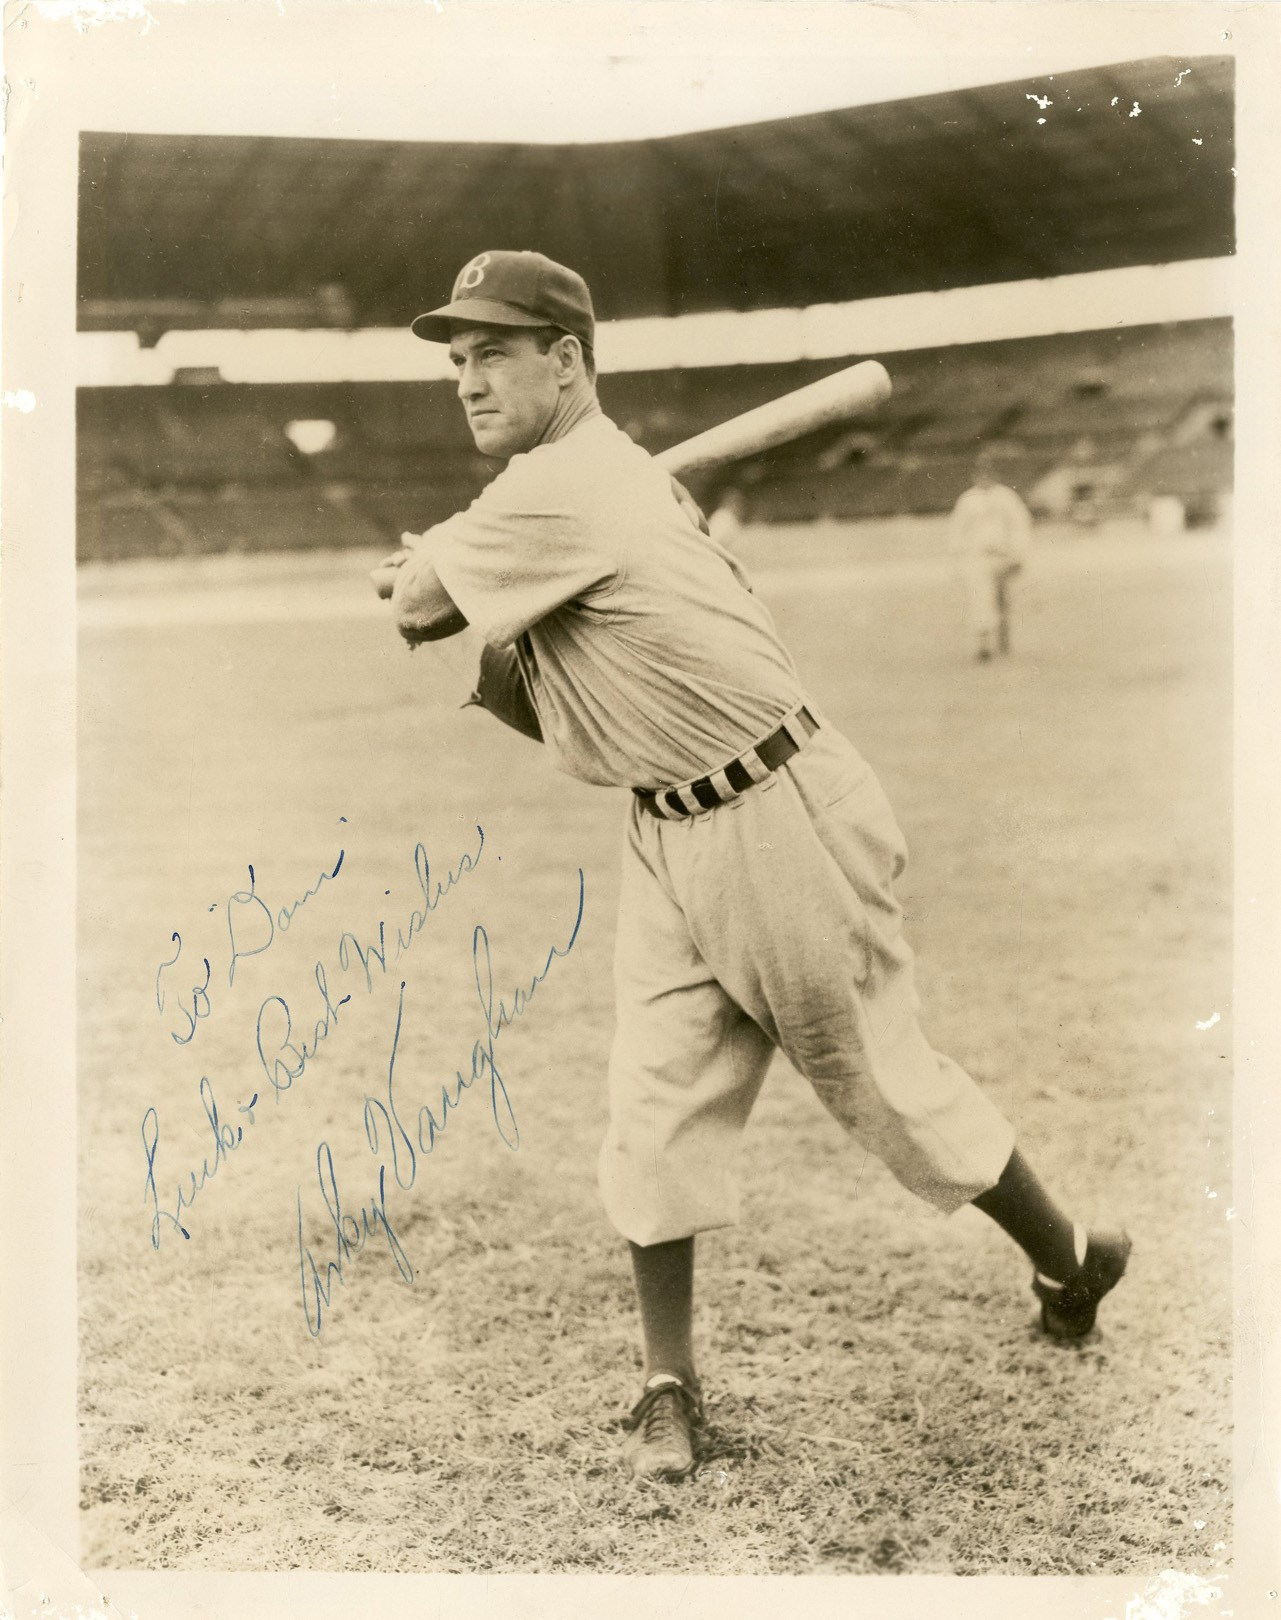 1940s Arky Vaughn Signed Photograph to Dom DiMaggio (JSA)